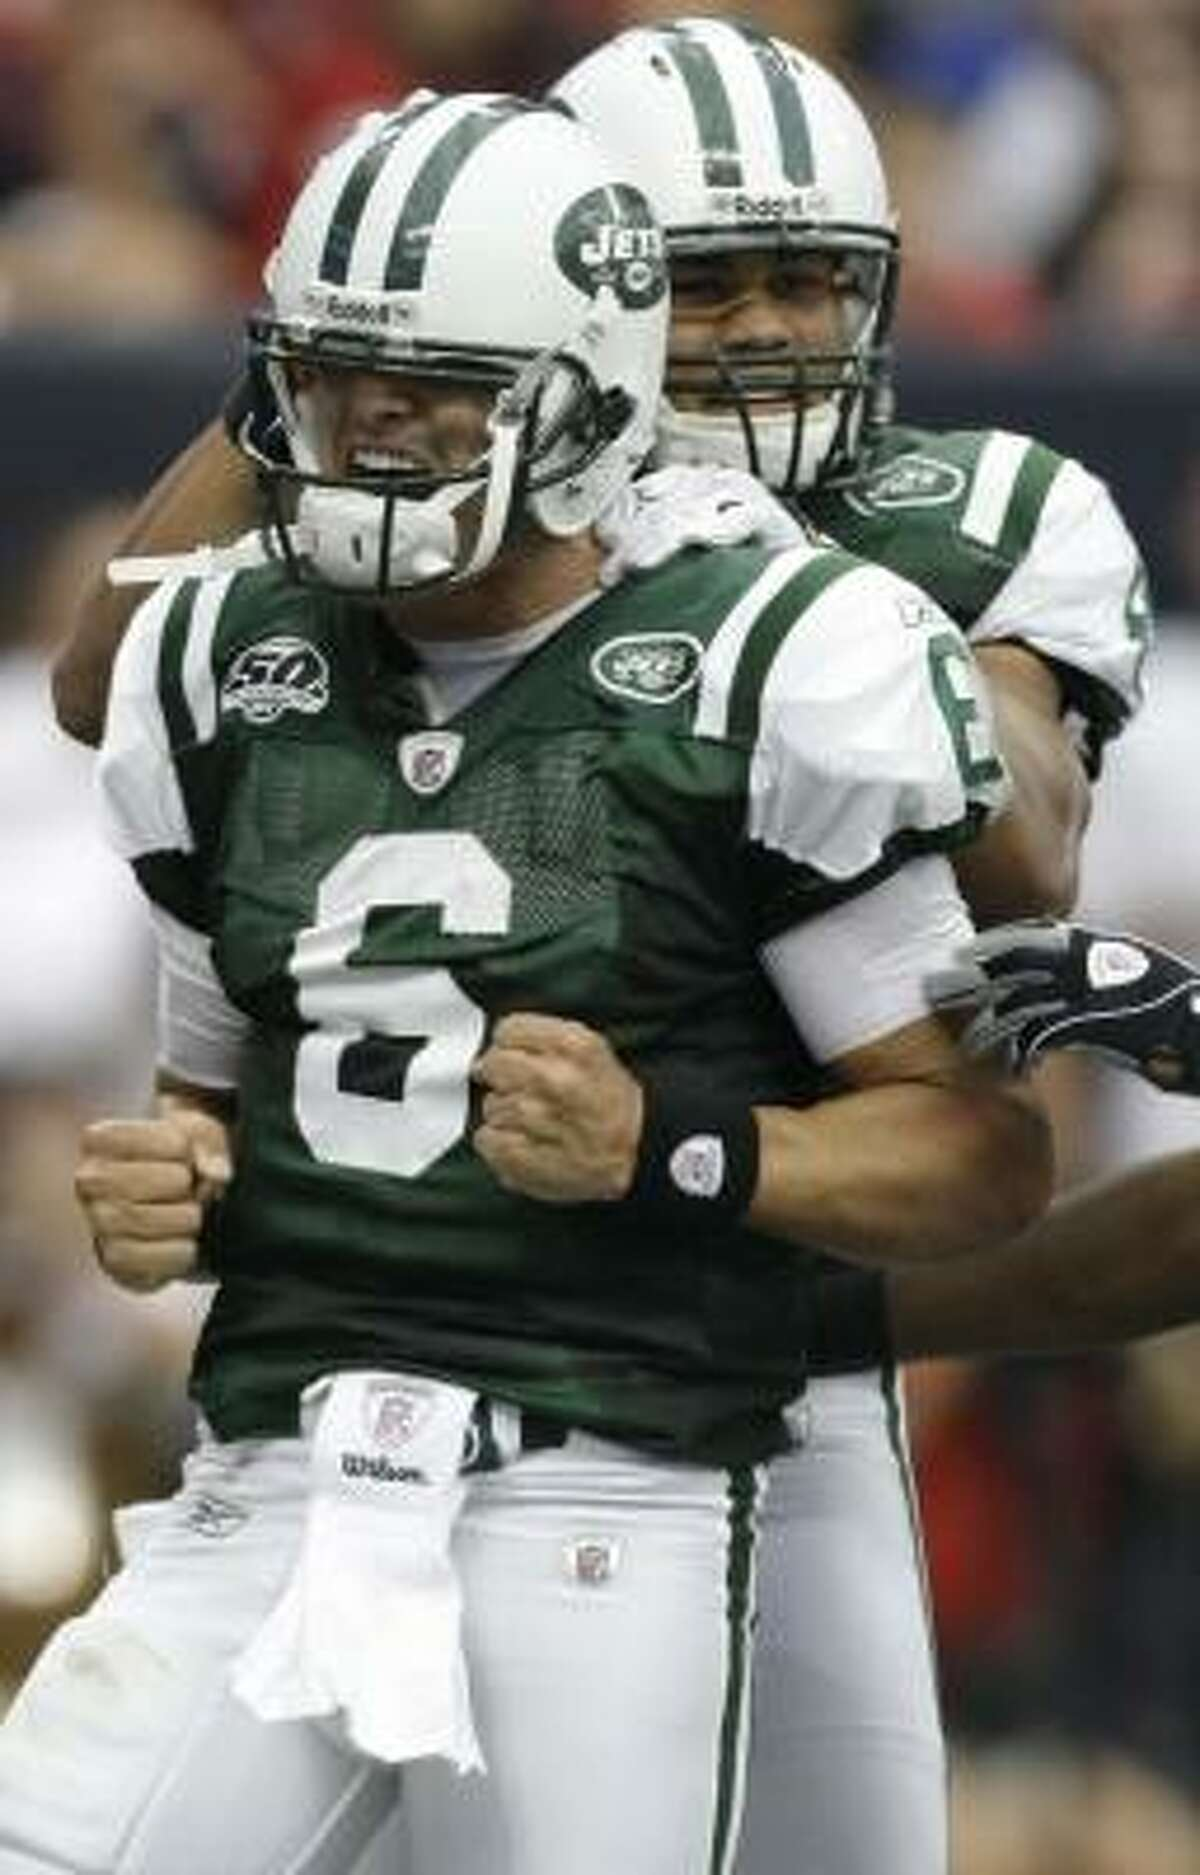 Rookie Mark Sanchez won his Jets debut with Sunday's 24-7 victory over the Texans.